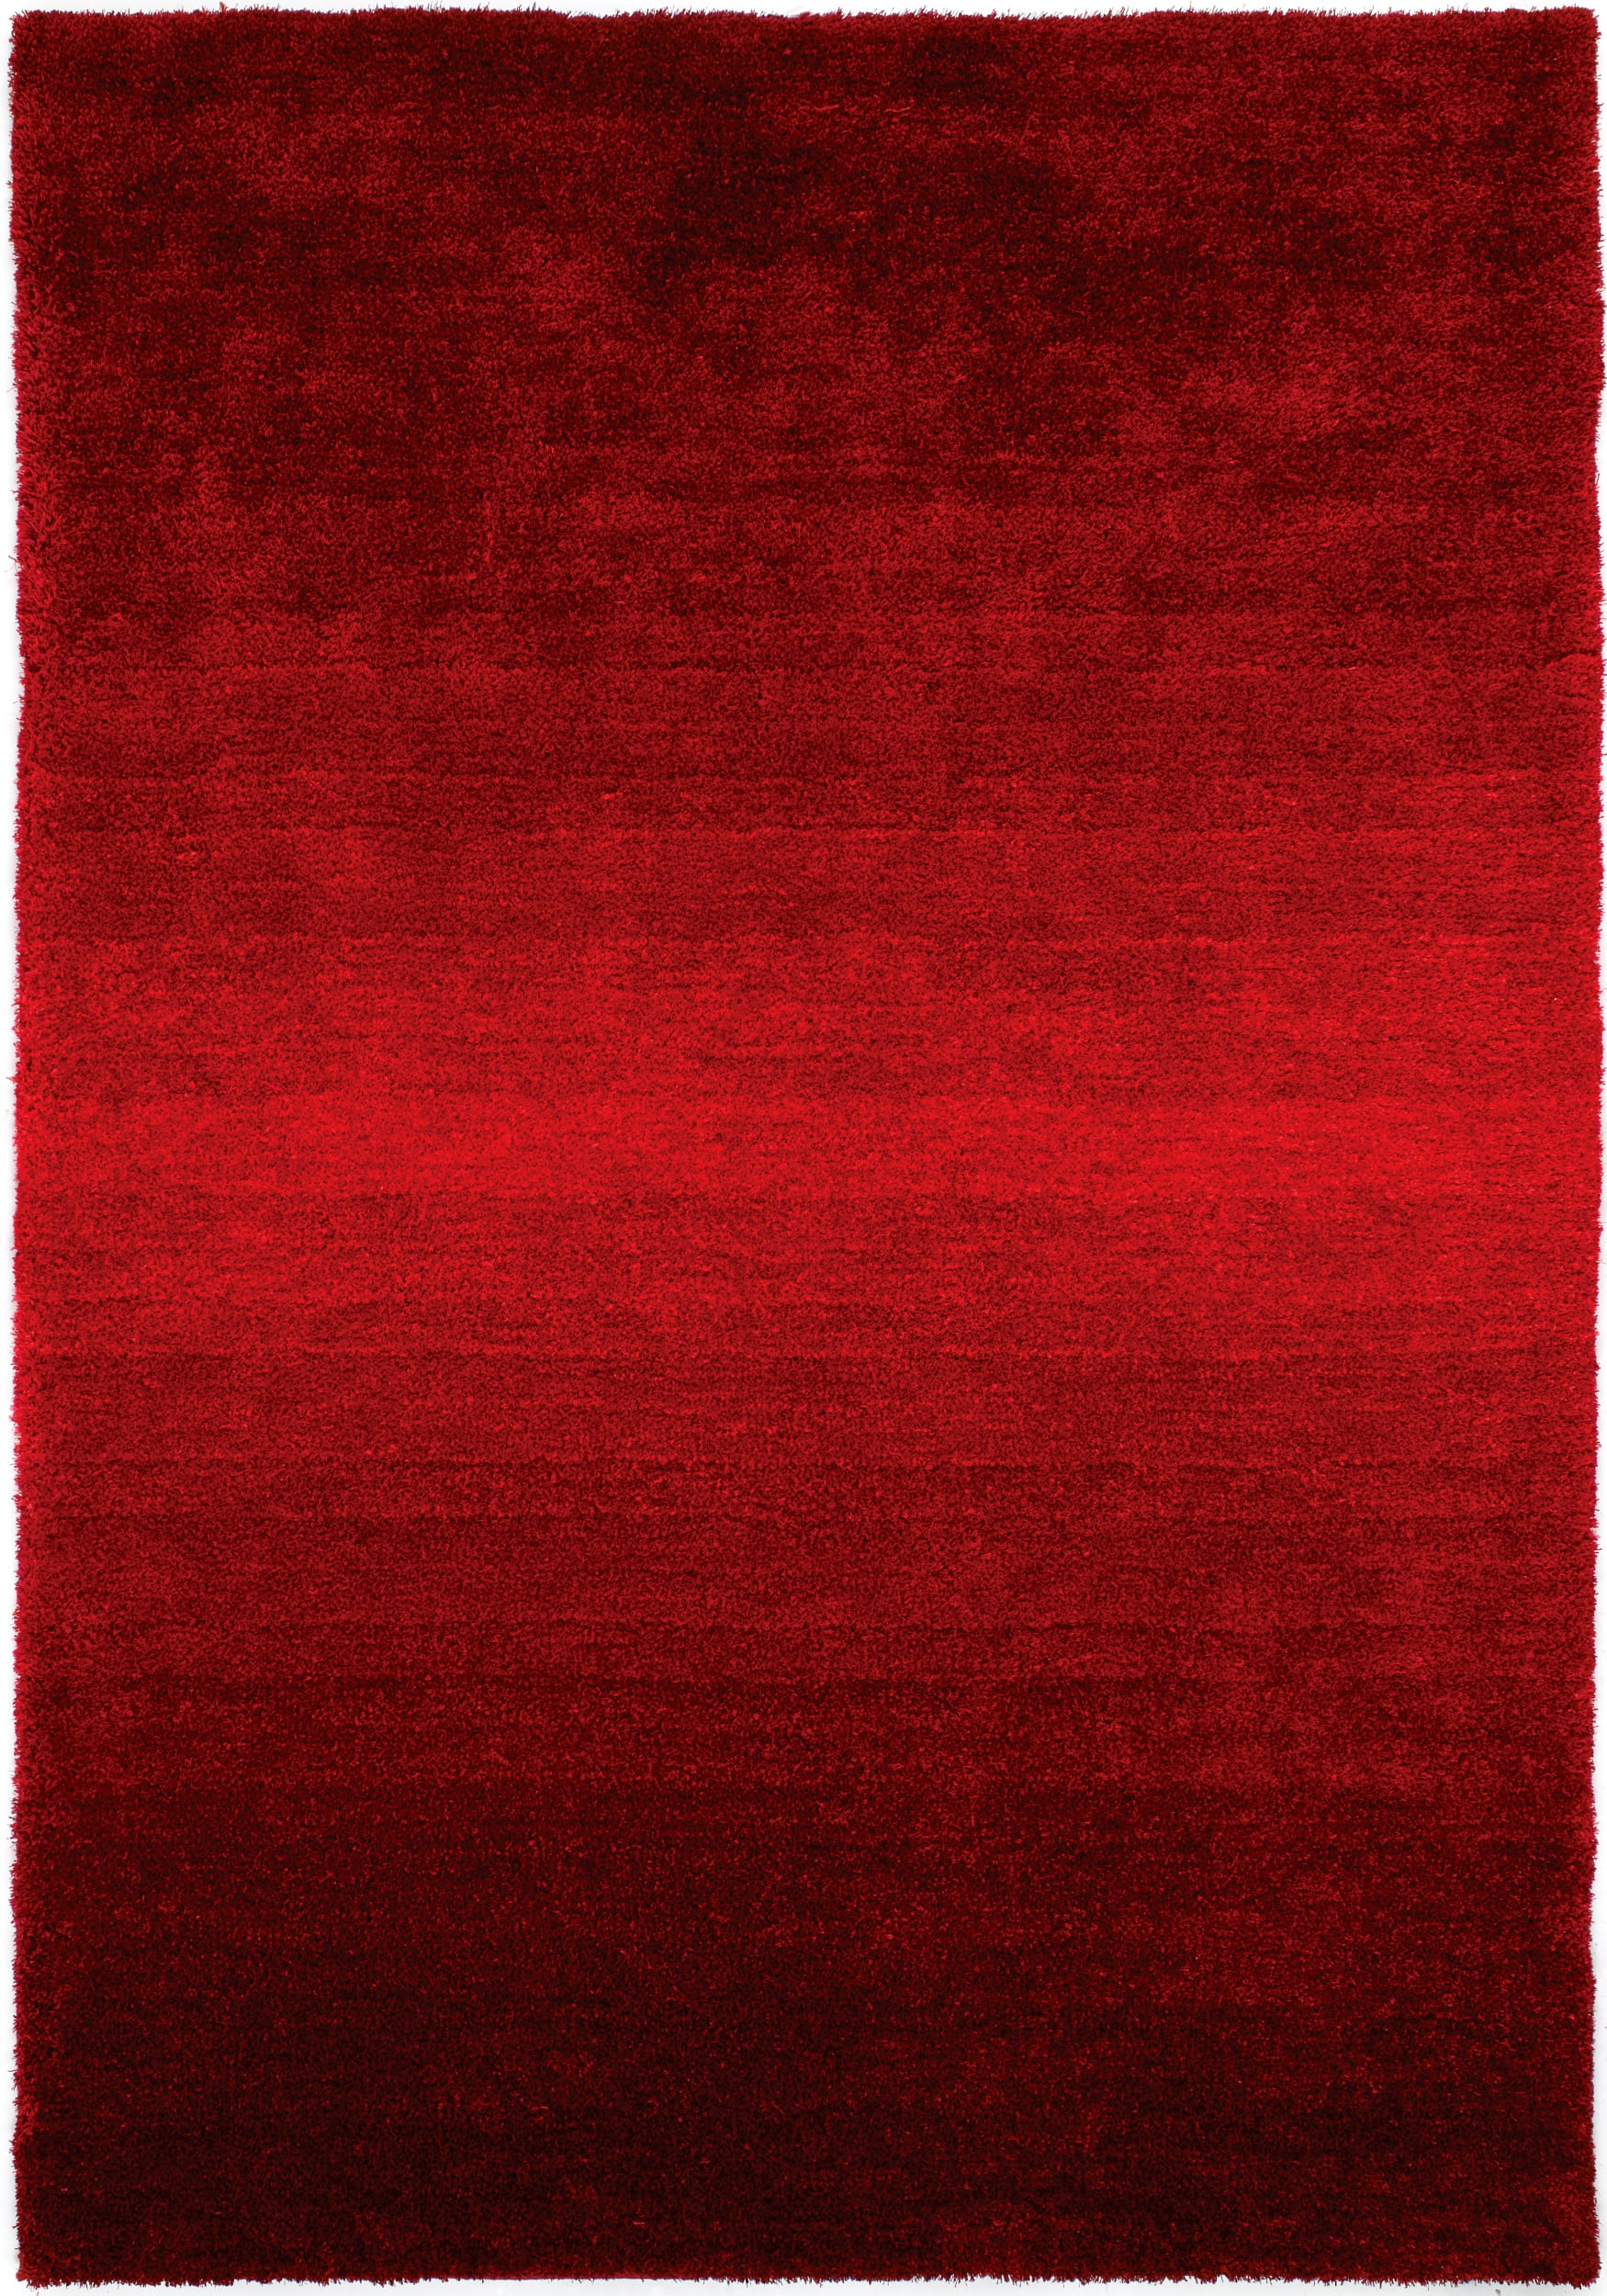 Rio Rug By Oriental Weavers In Red Colour Rugs Uk